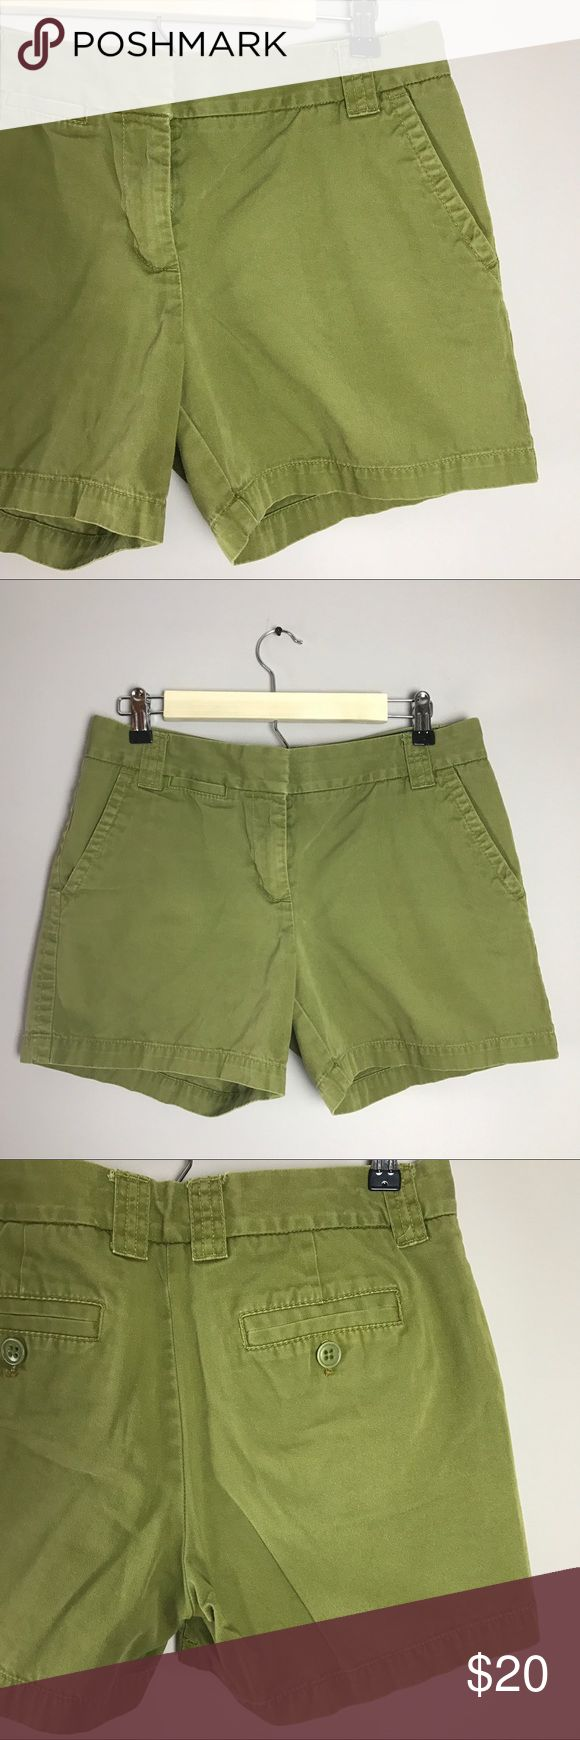 """J.Crew Size 6 Chino Classic City Fit Green Shorts J.Crew Size 6 Chino Classic Twill City Fit Green Functional pockets at hips Hook and eye closure Rise 9"""" Inseam 5"""" J. Crew Shorts"""